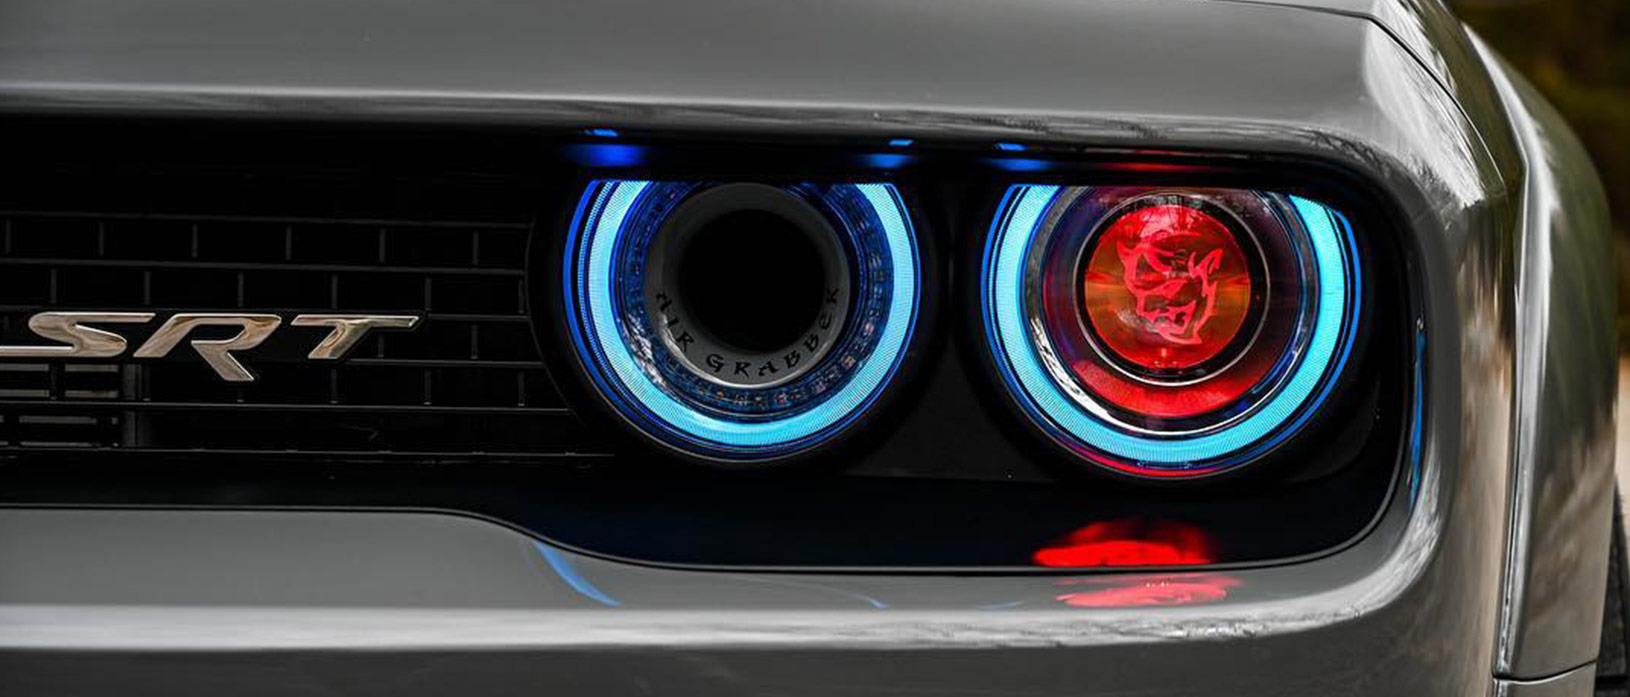 Headlights of a Dodge Demon with a Demon head in the center